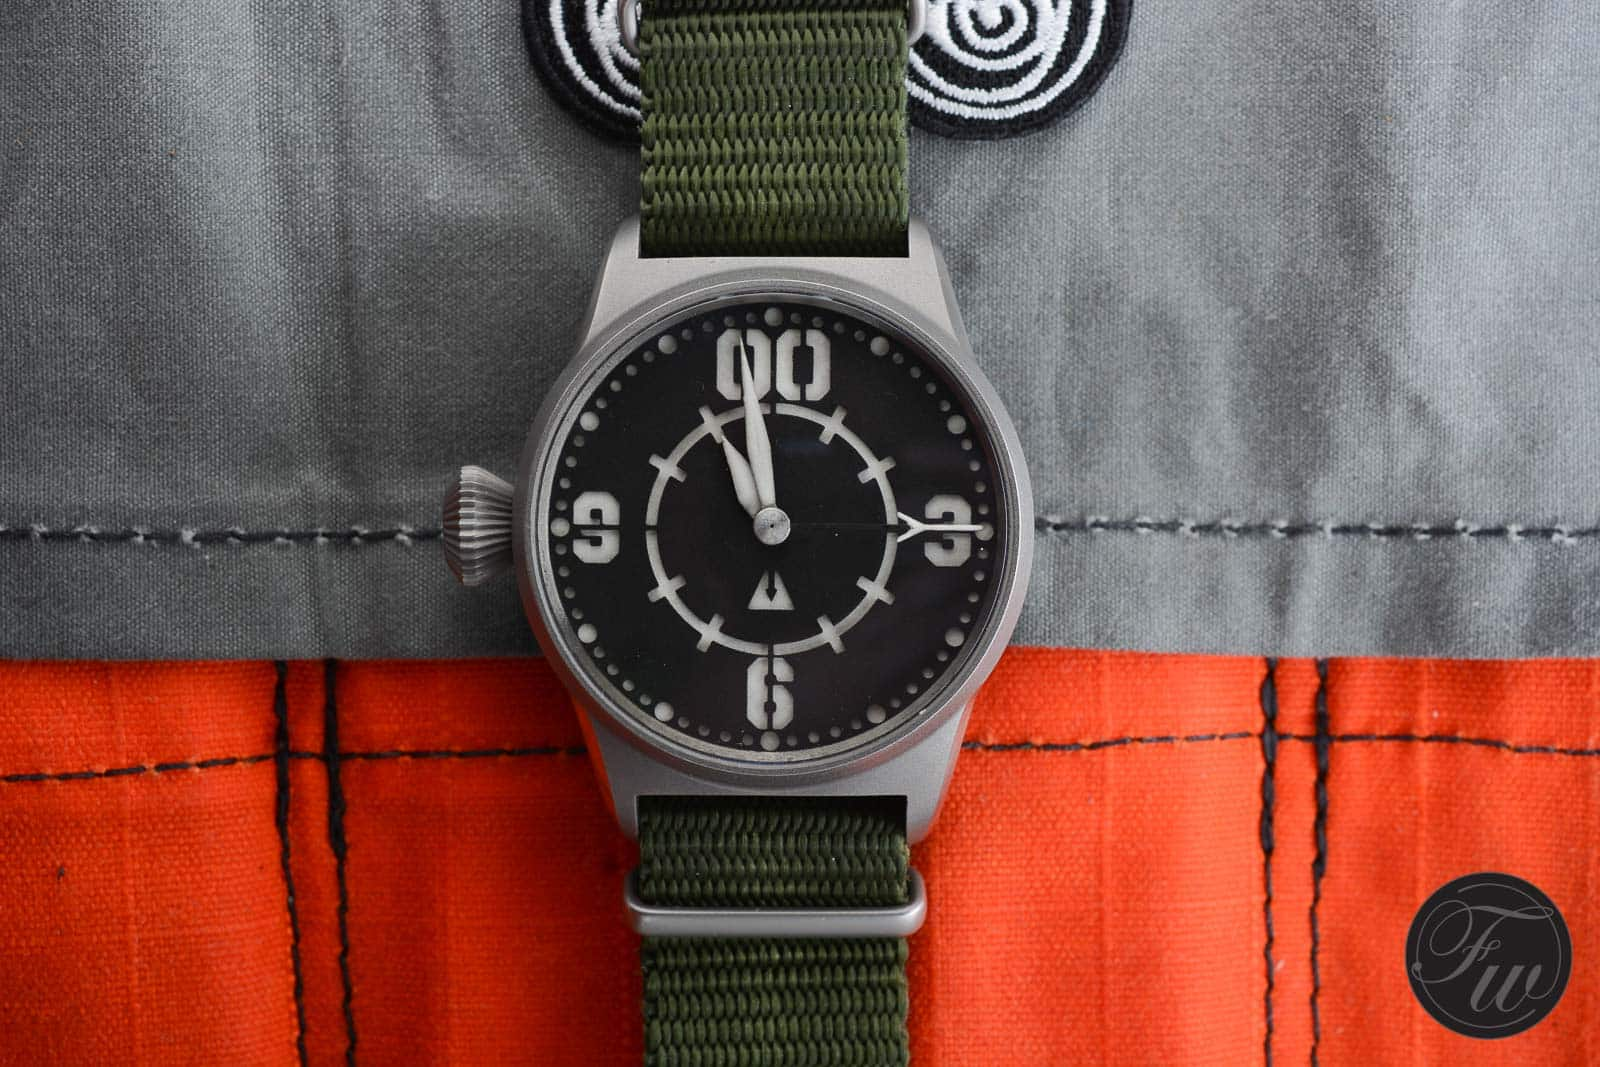 Subdelta Ace Fratellowatches Test Review